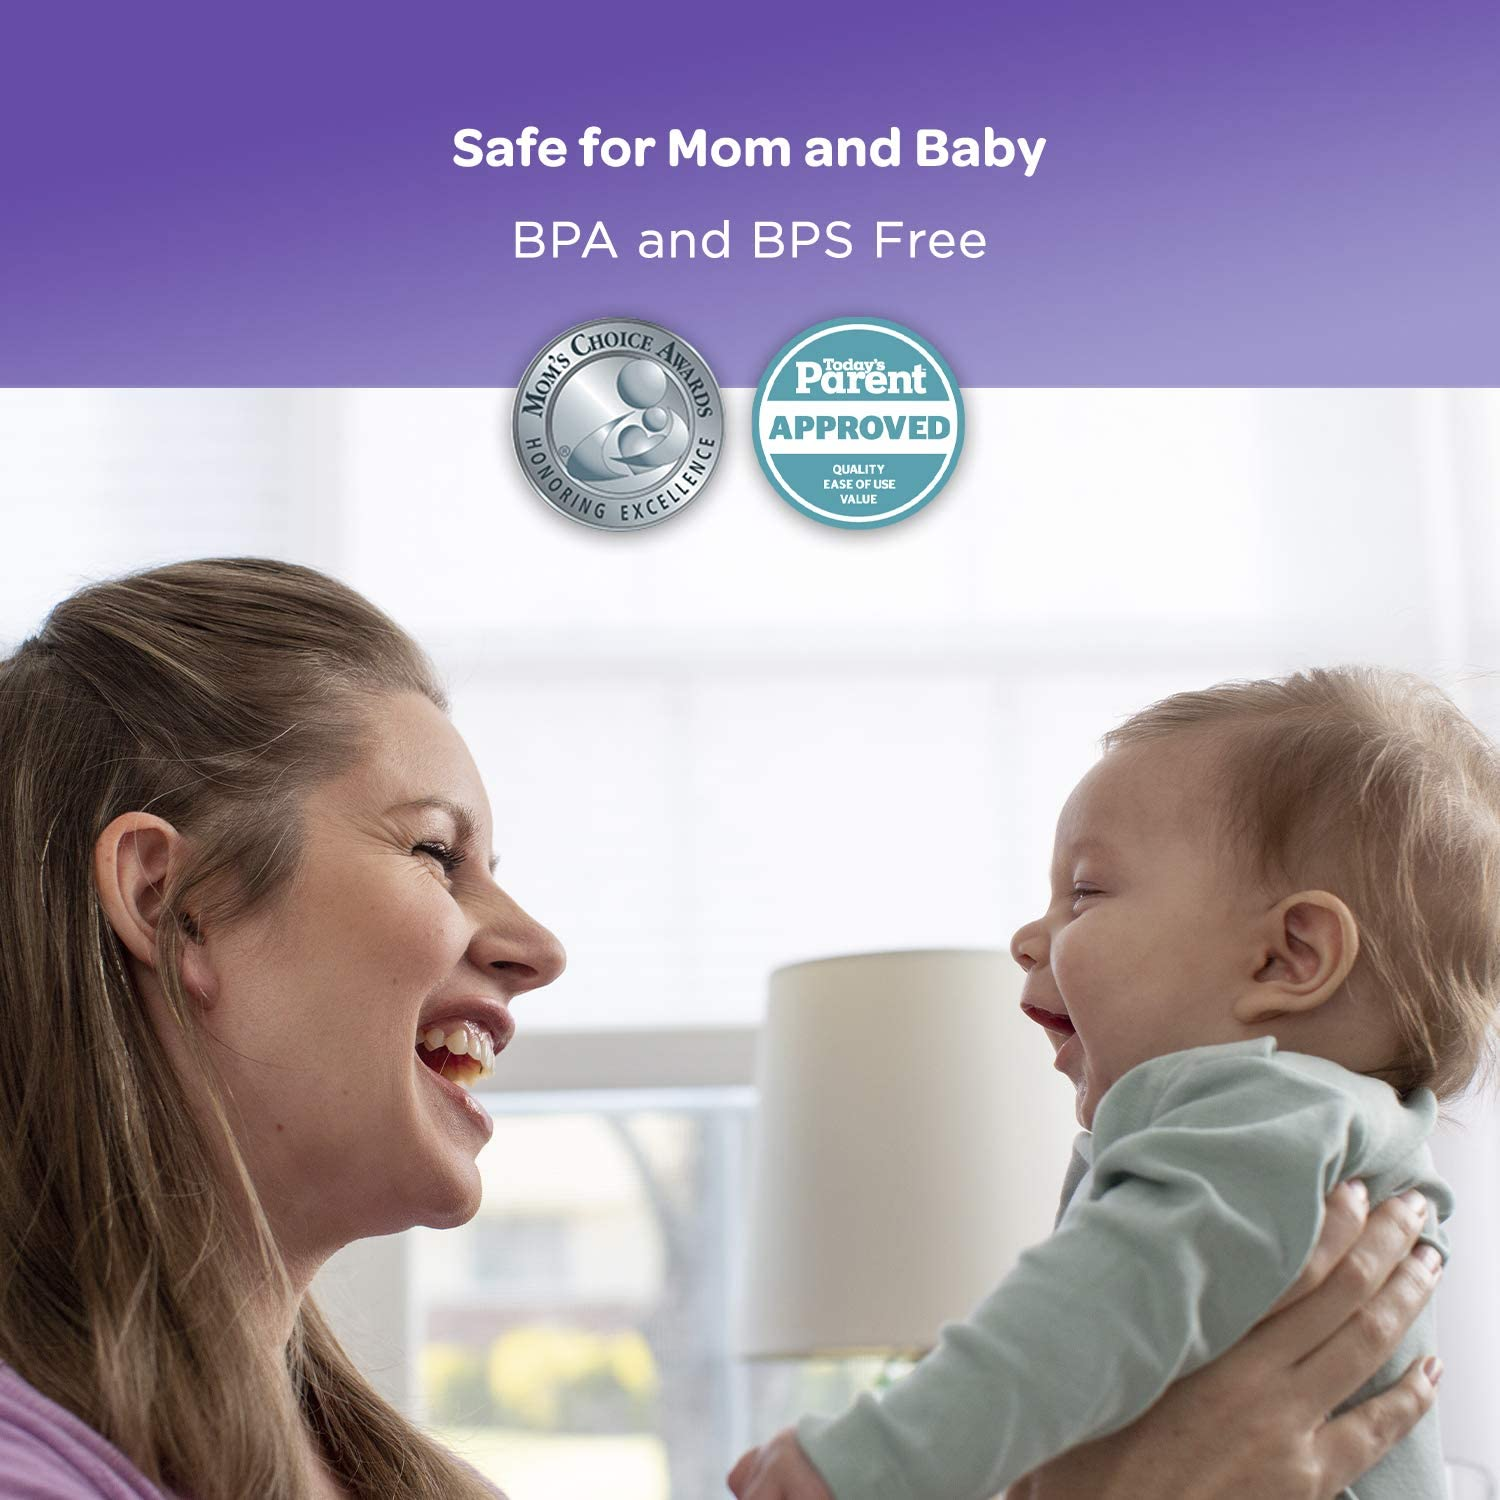 LANSINOH BPA and BPA Free Products Safe for Mom and Baby | ANB Baby